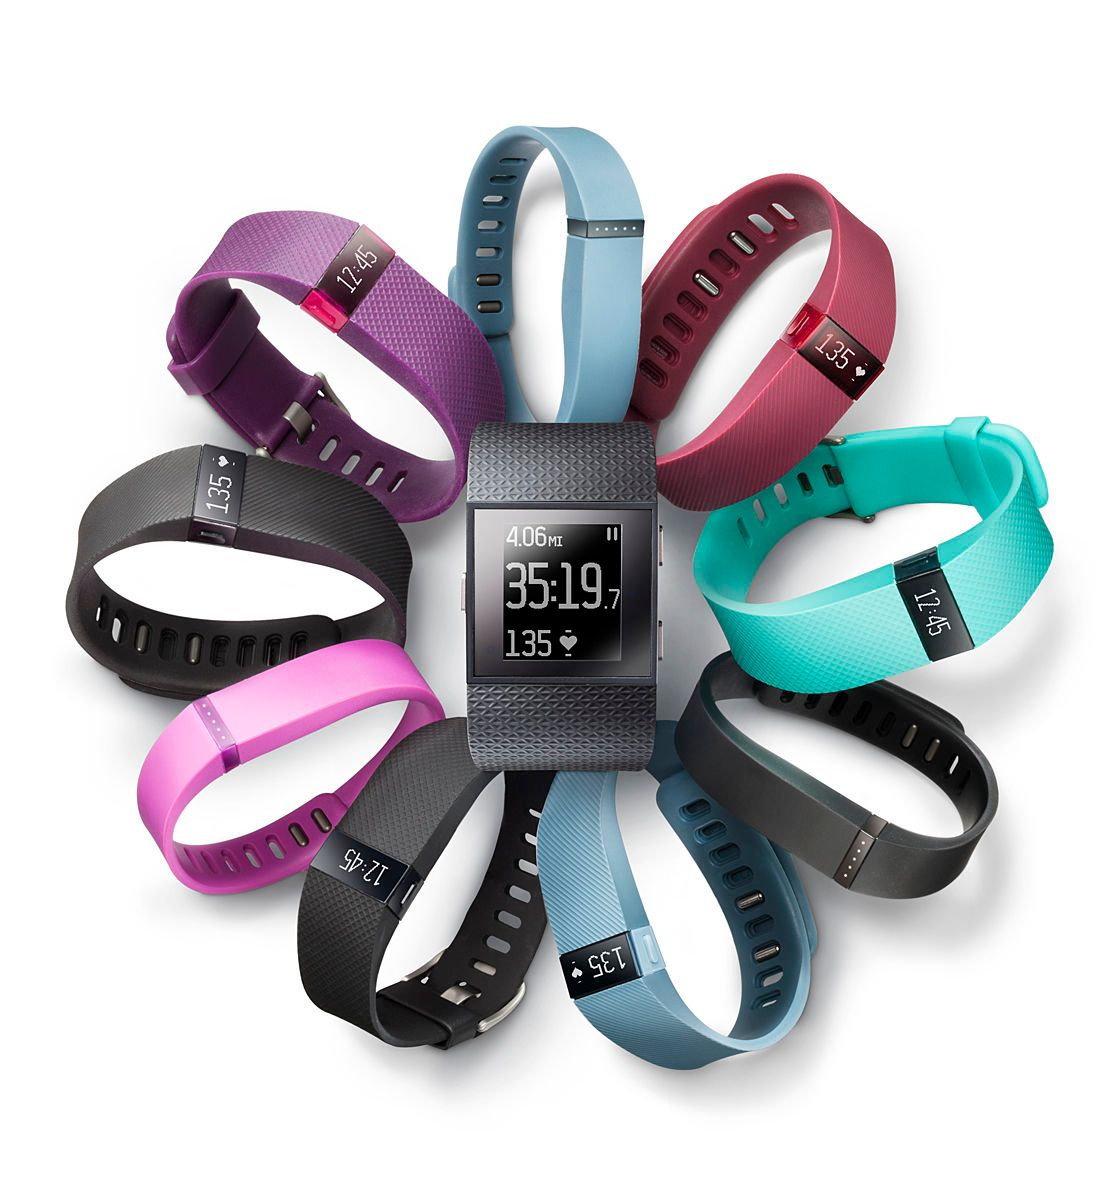 1fitbit_family